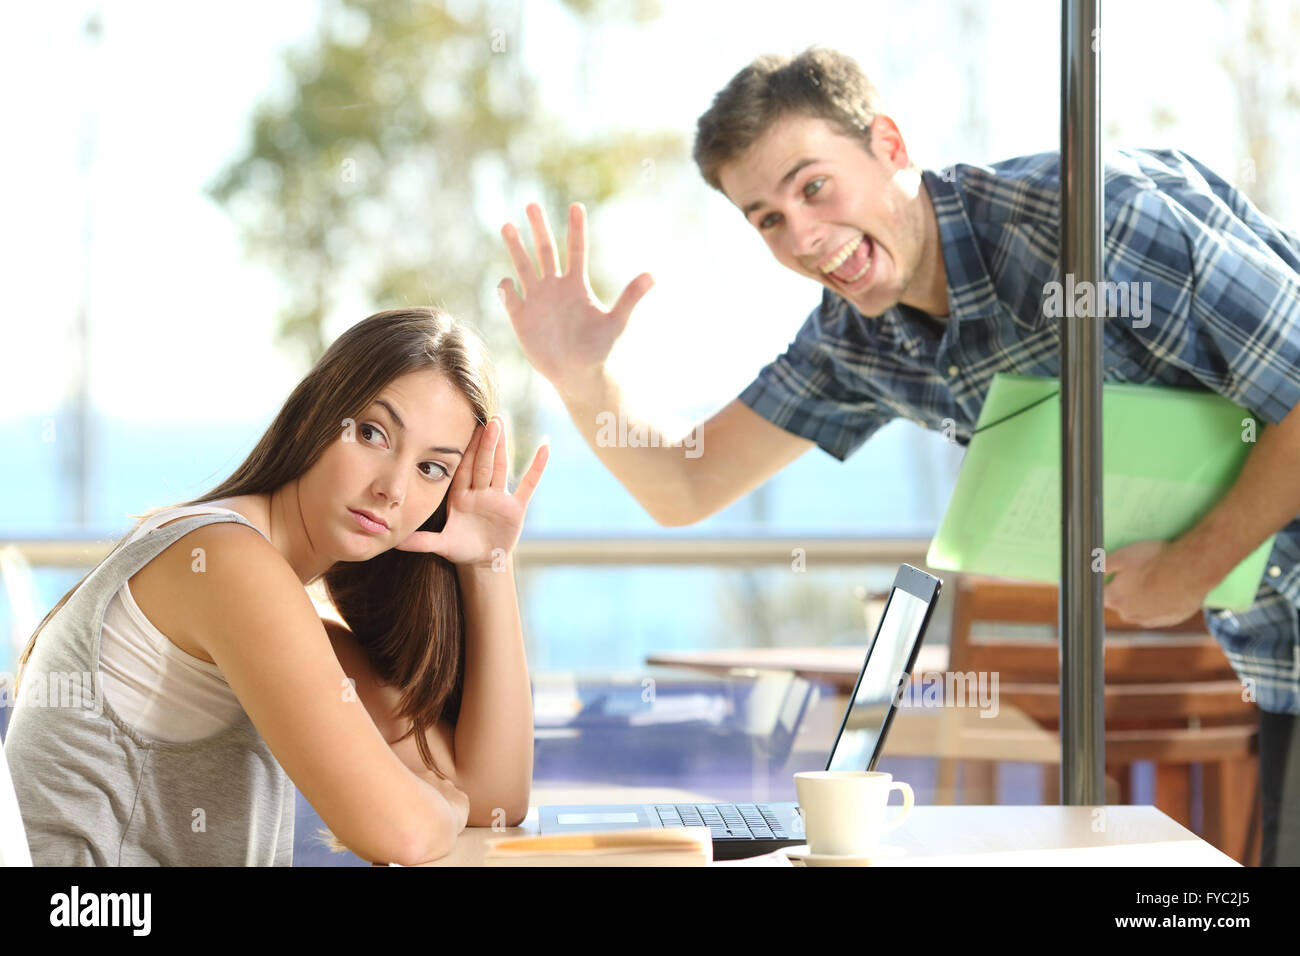 Girl ignoring and rejecting to a stalker man waving her in a coffee shop in a blind date - Stock Image